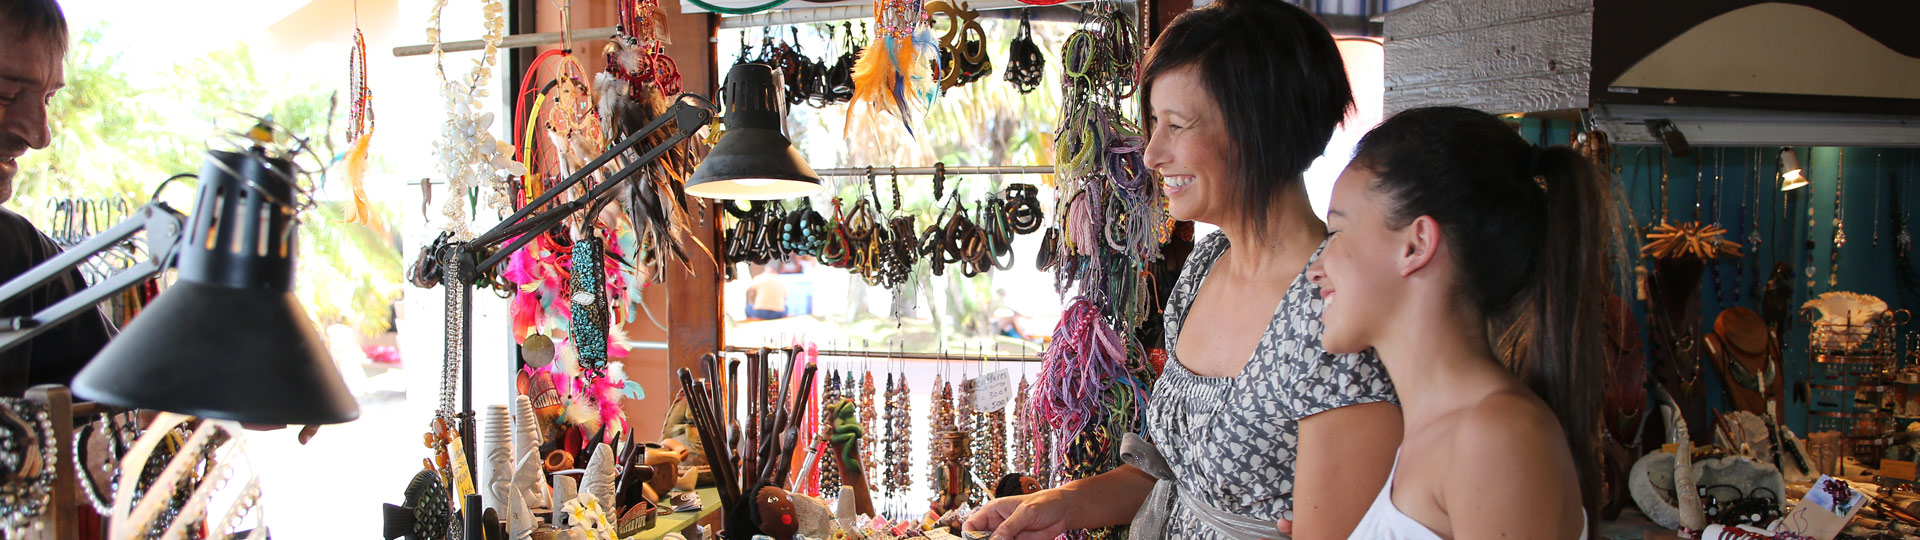 Shopping in Nouméa' market